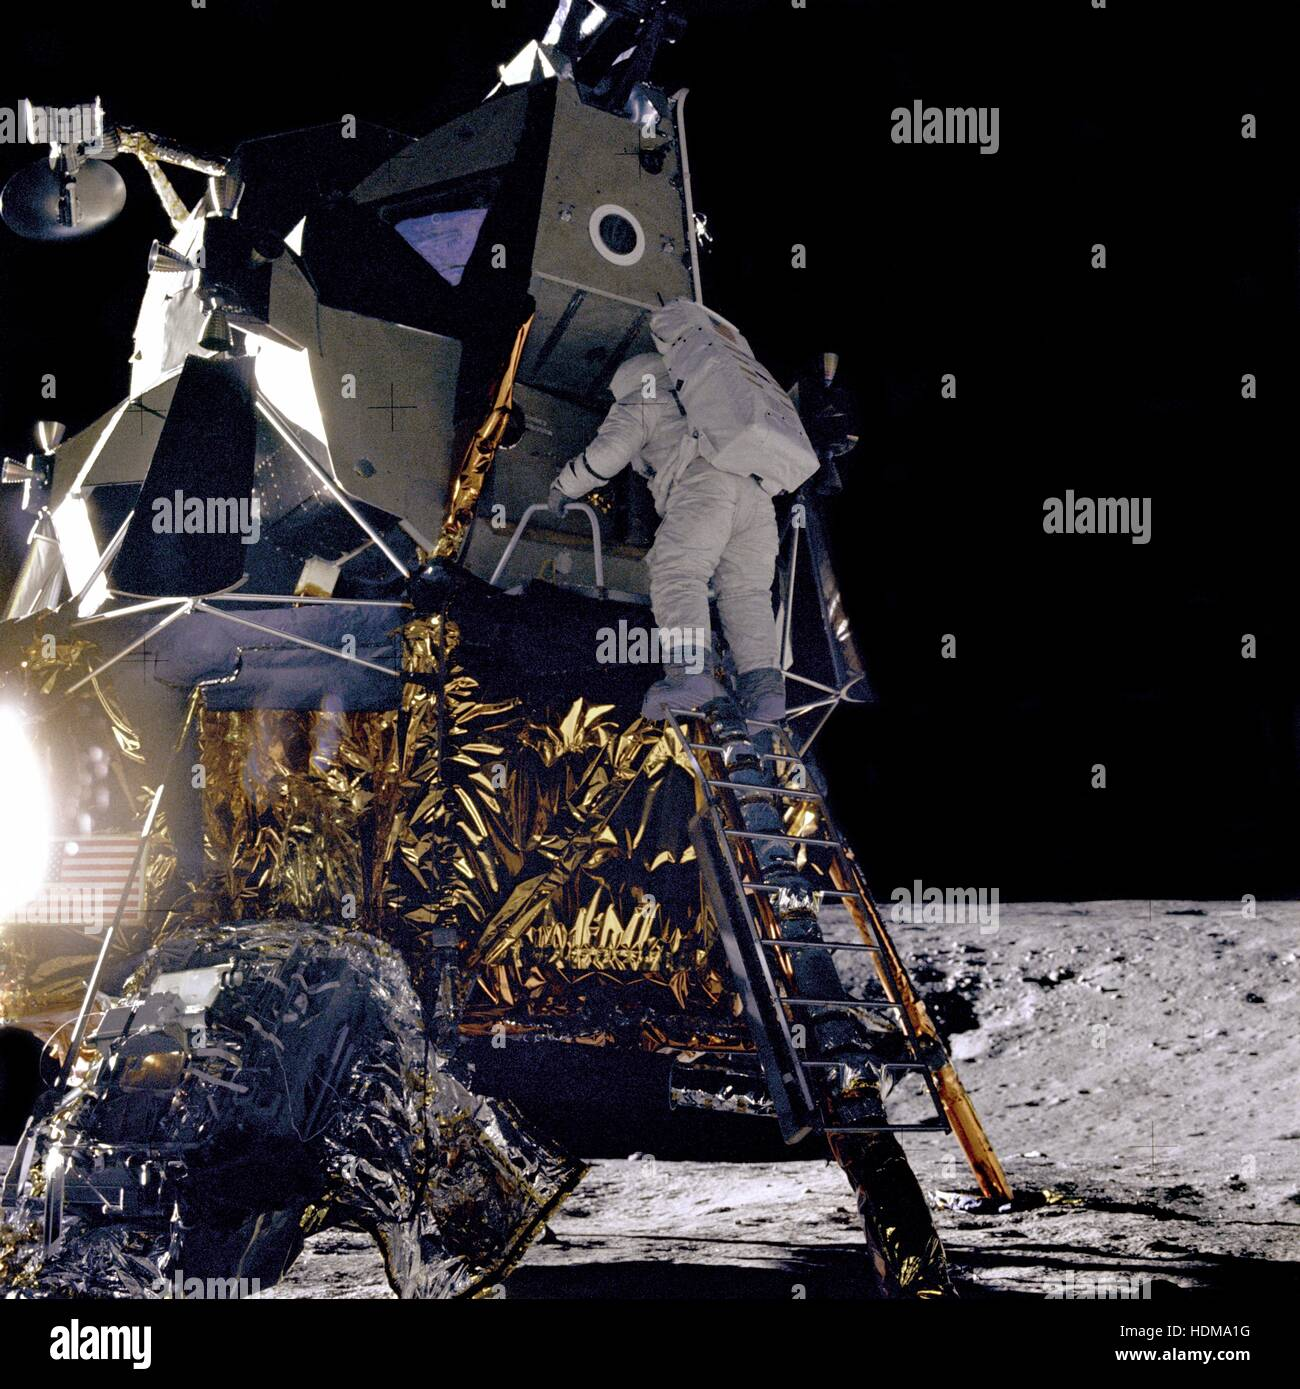 NASA Apollo 12 lunar landing mission astronaut Alan Bean climbs down the ladder of the Lunar Module Intrepid for - Stock Image